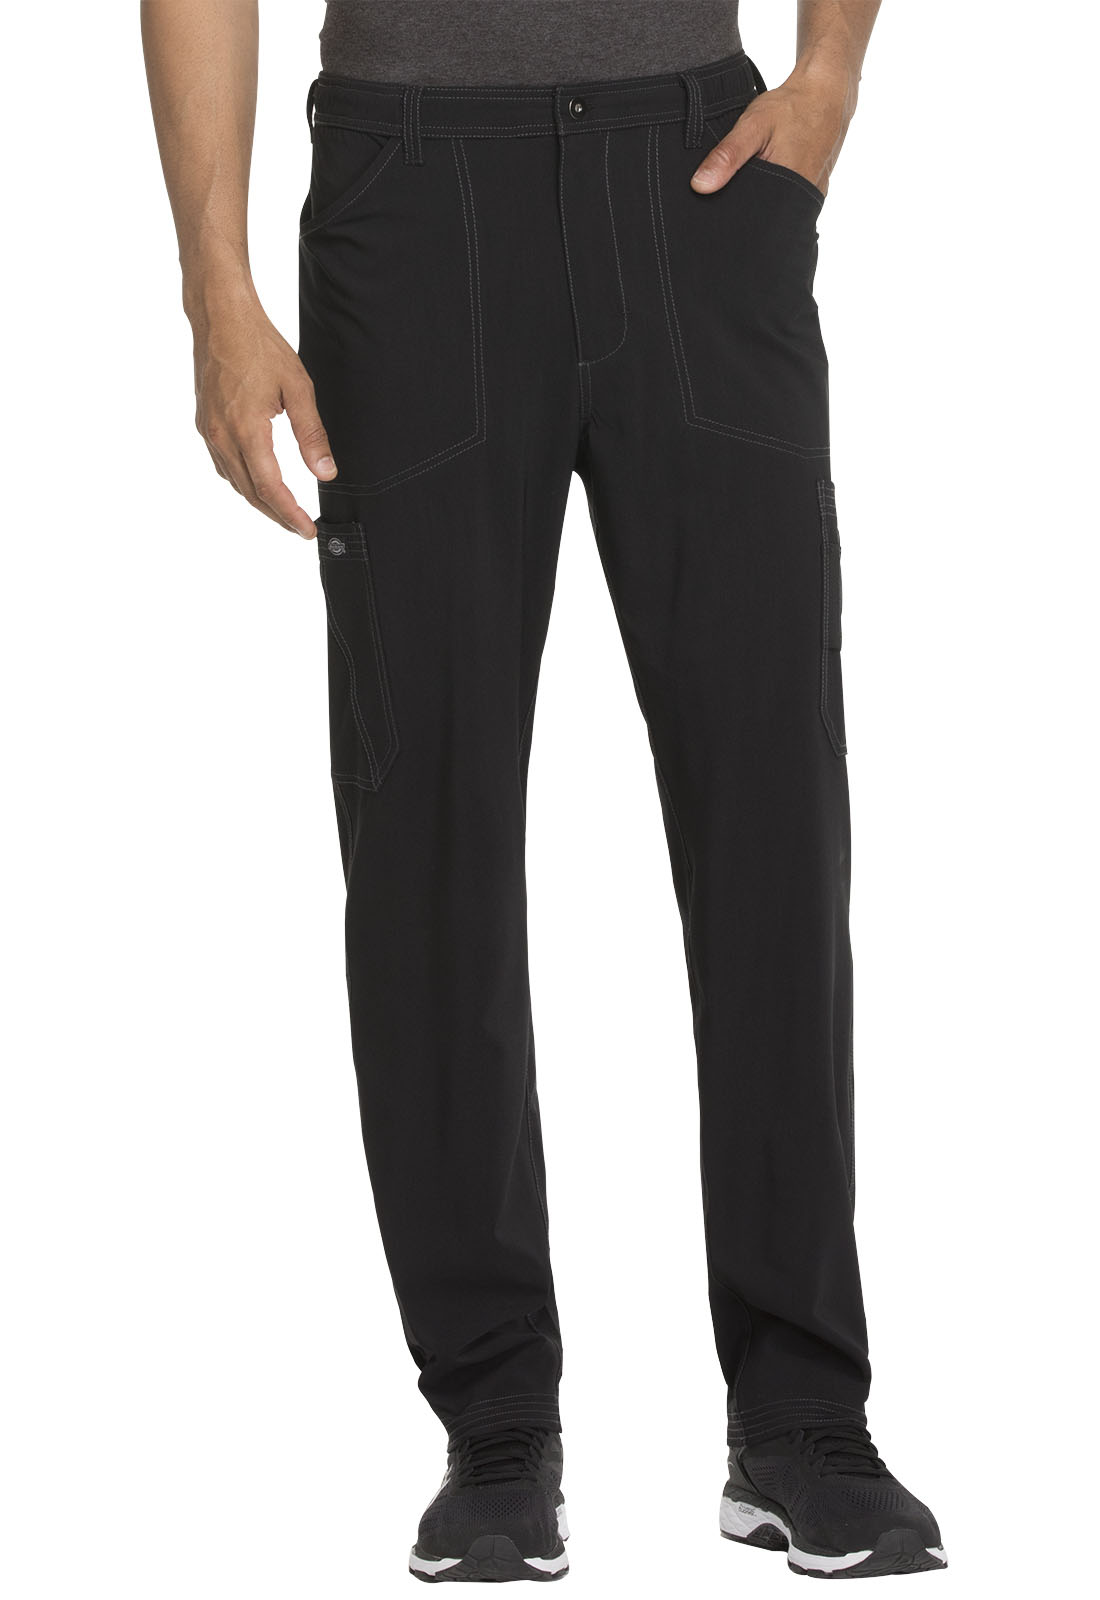 search for official durable modeling another chance Men's Straight Leg Zip Fly Cargo Pant (Tall) in Black from Dickies Medical